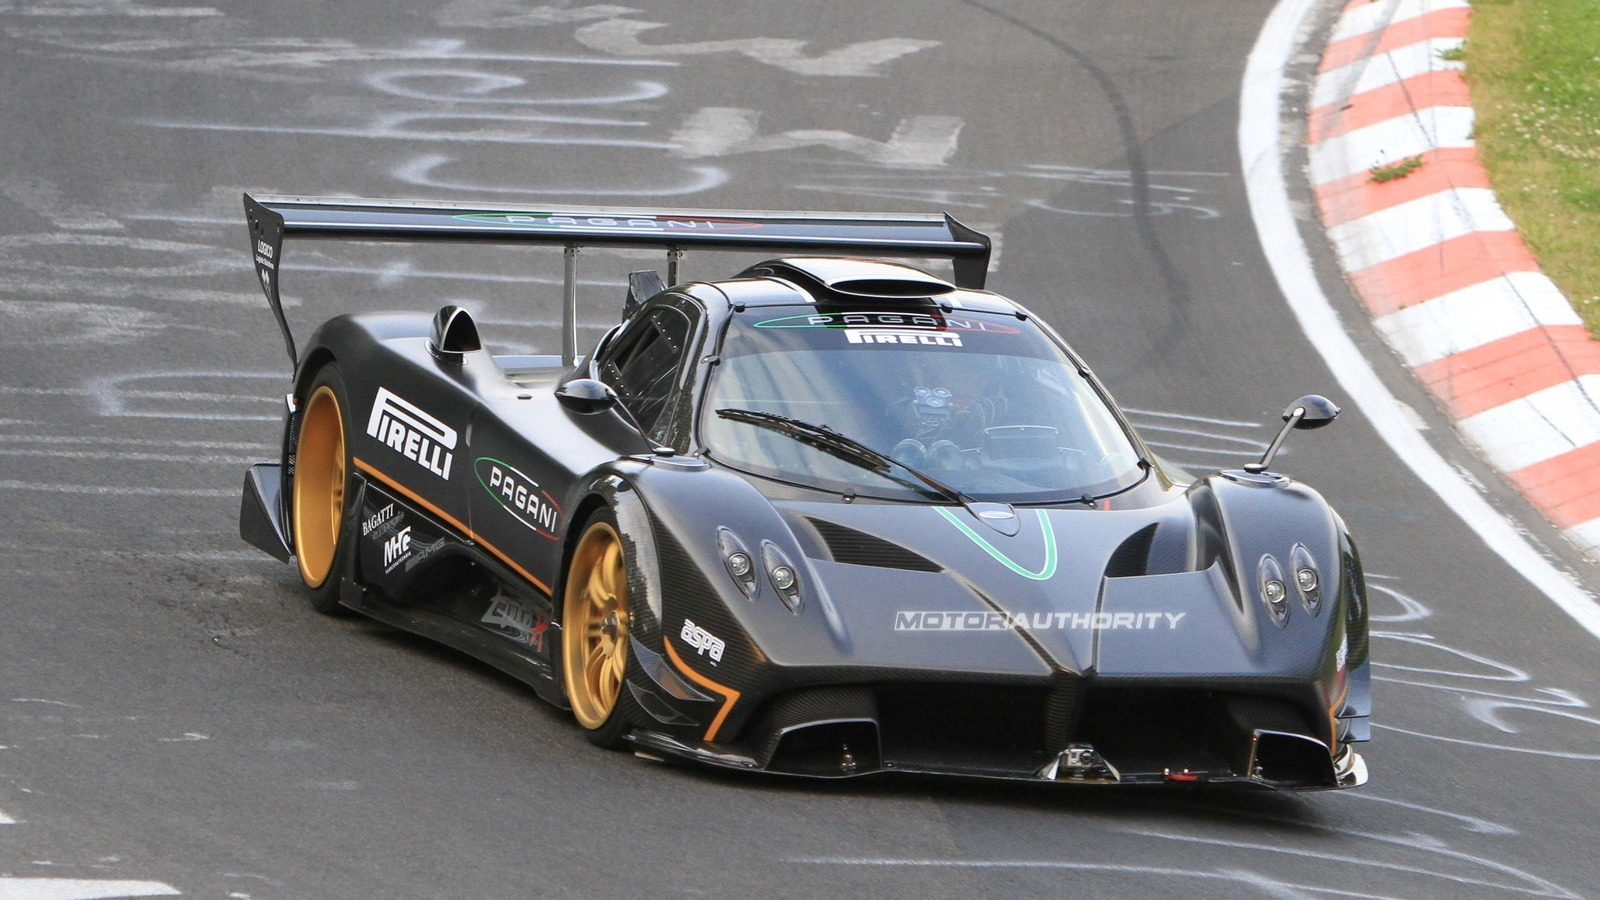 Pagani Zonda R spied on the 'Ring setting new 6:47 lap time